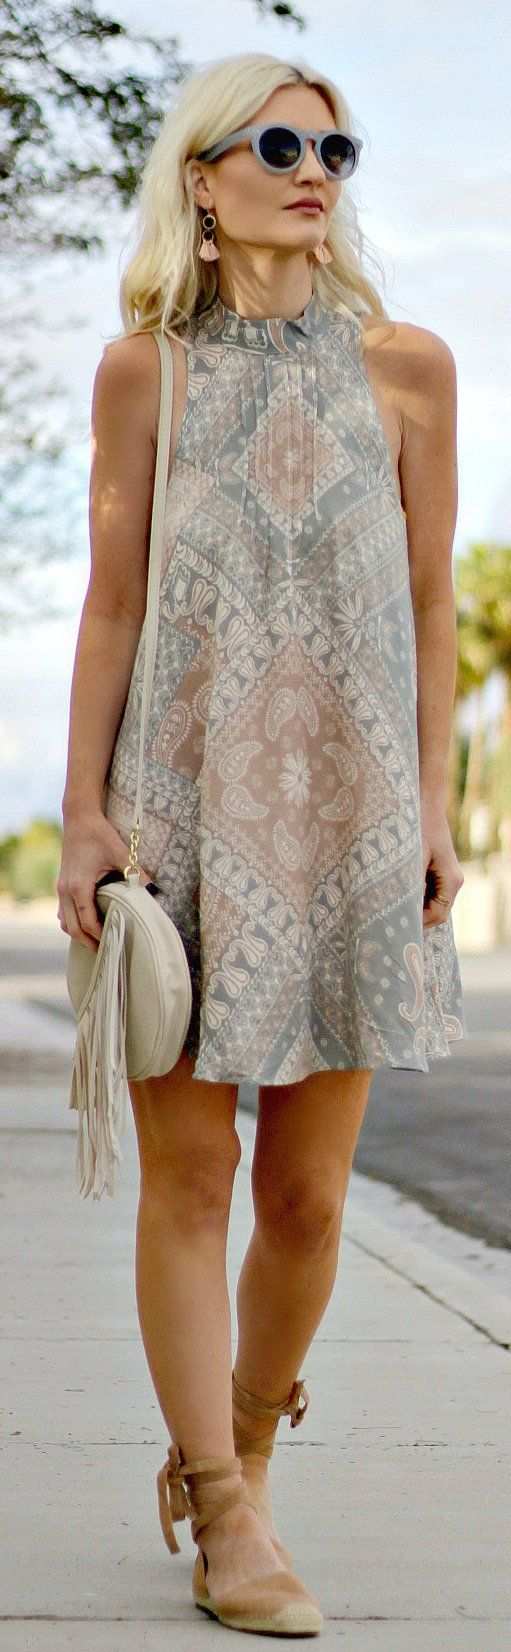 Printed Sleeveless Dress / Cream Leather Shoulder Bag / Brown Pumps